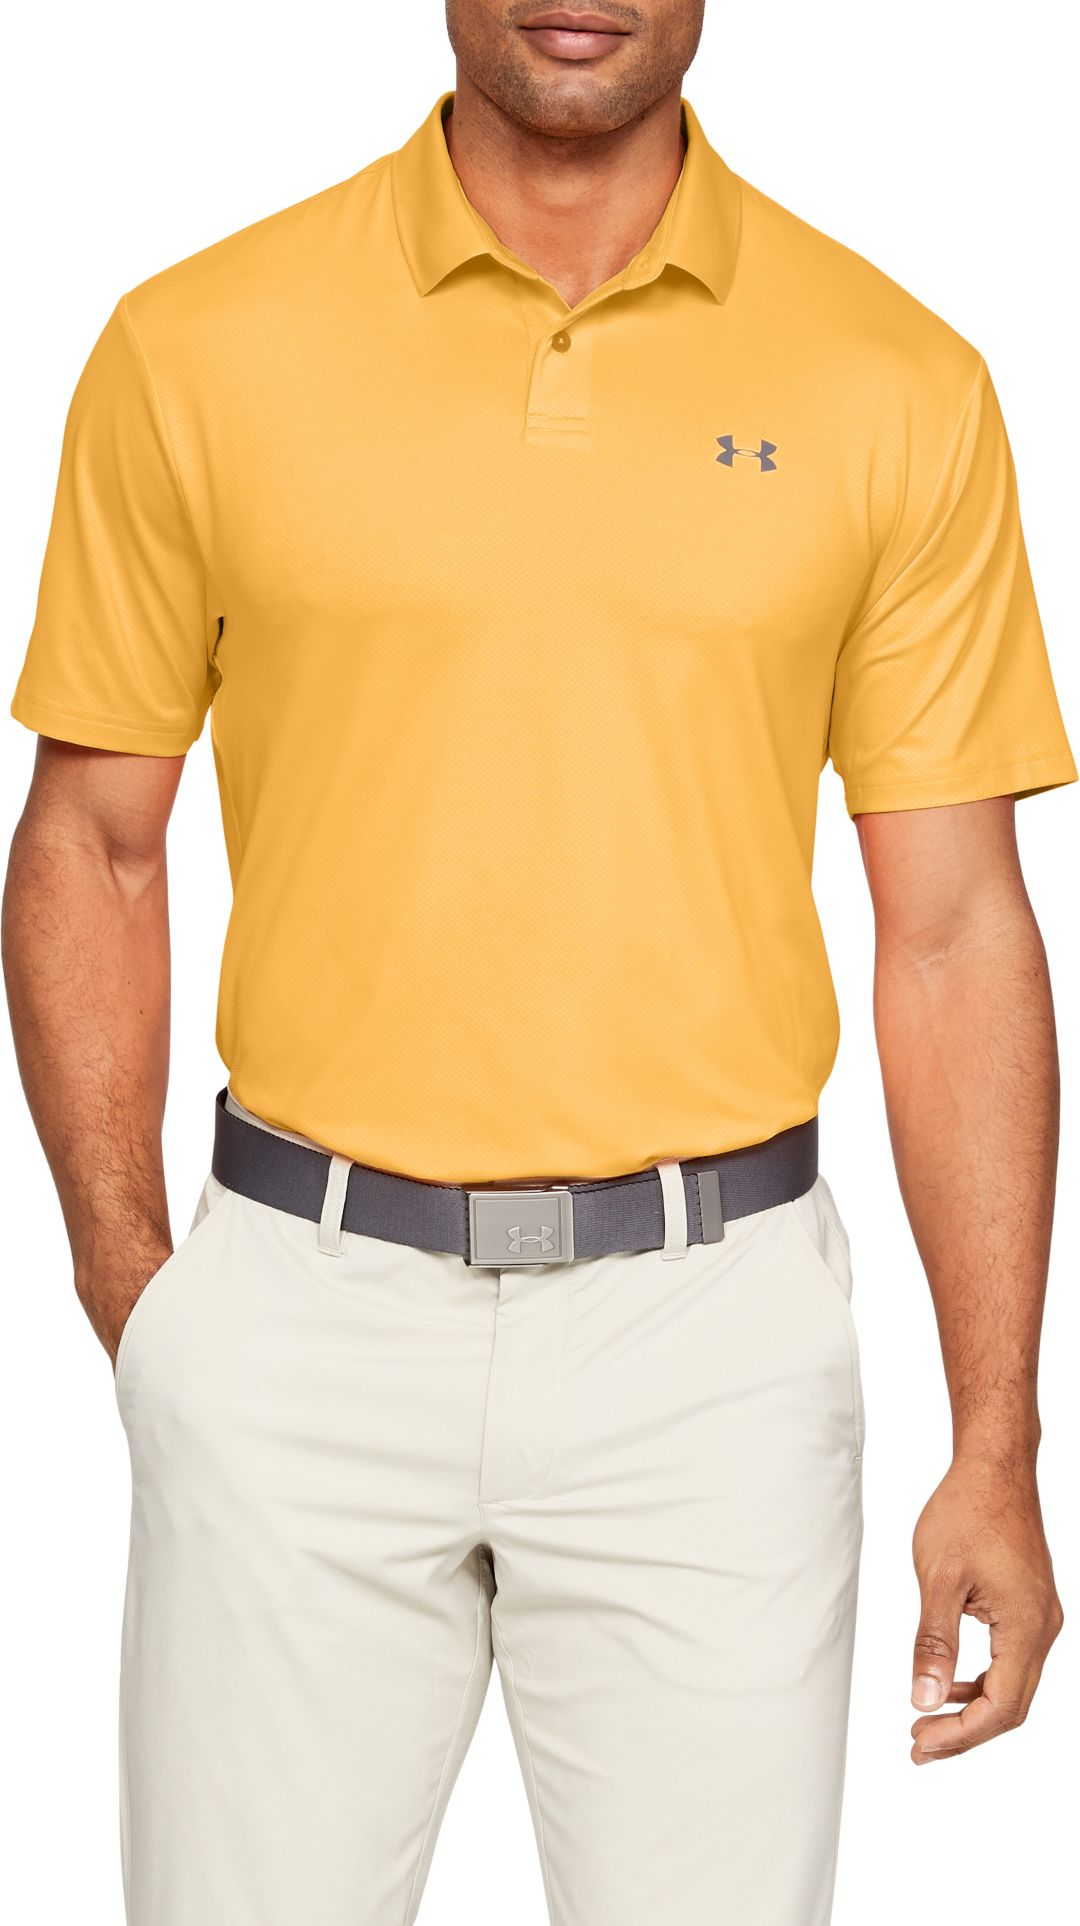 7e49aaca7c Under Armour Men's Performance 2.0 Golf Polo